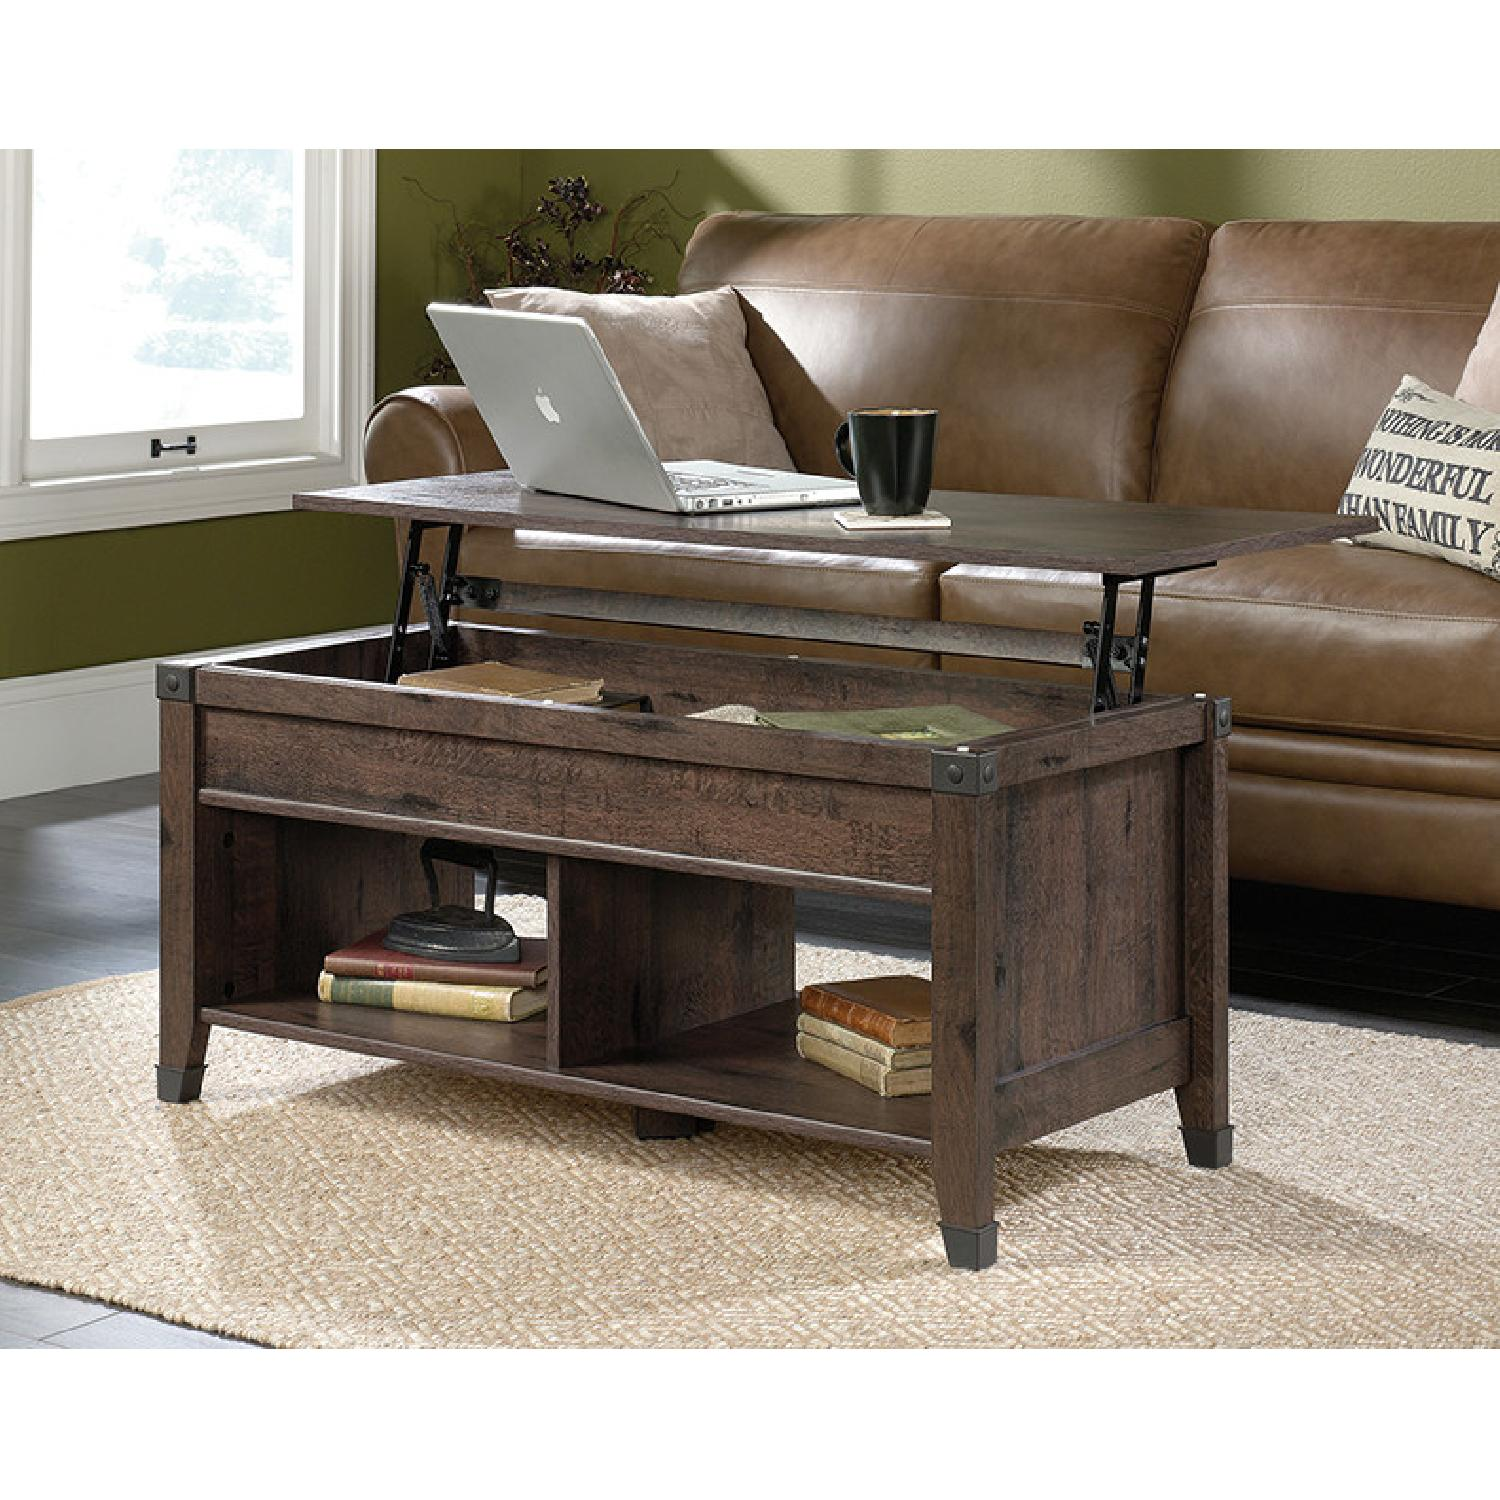 Sauder Carson Forge Lift Top Coffee Table - image-1